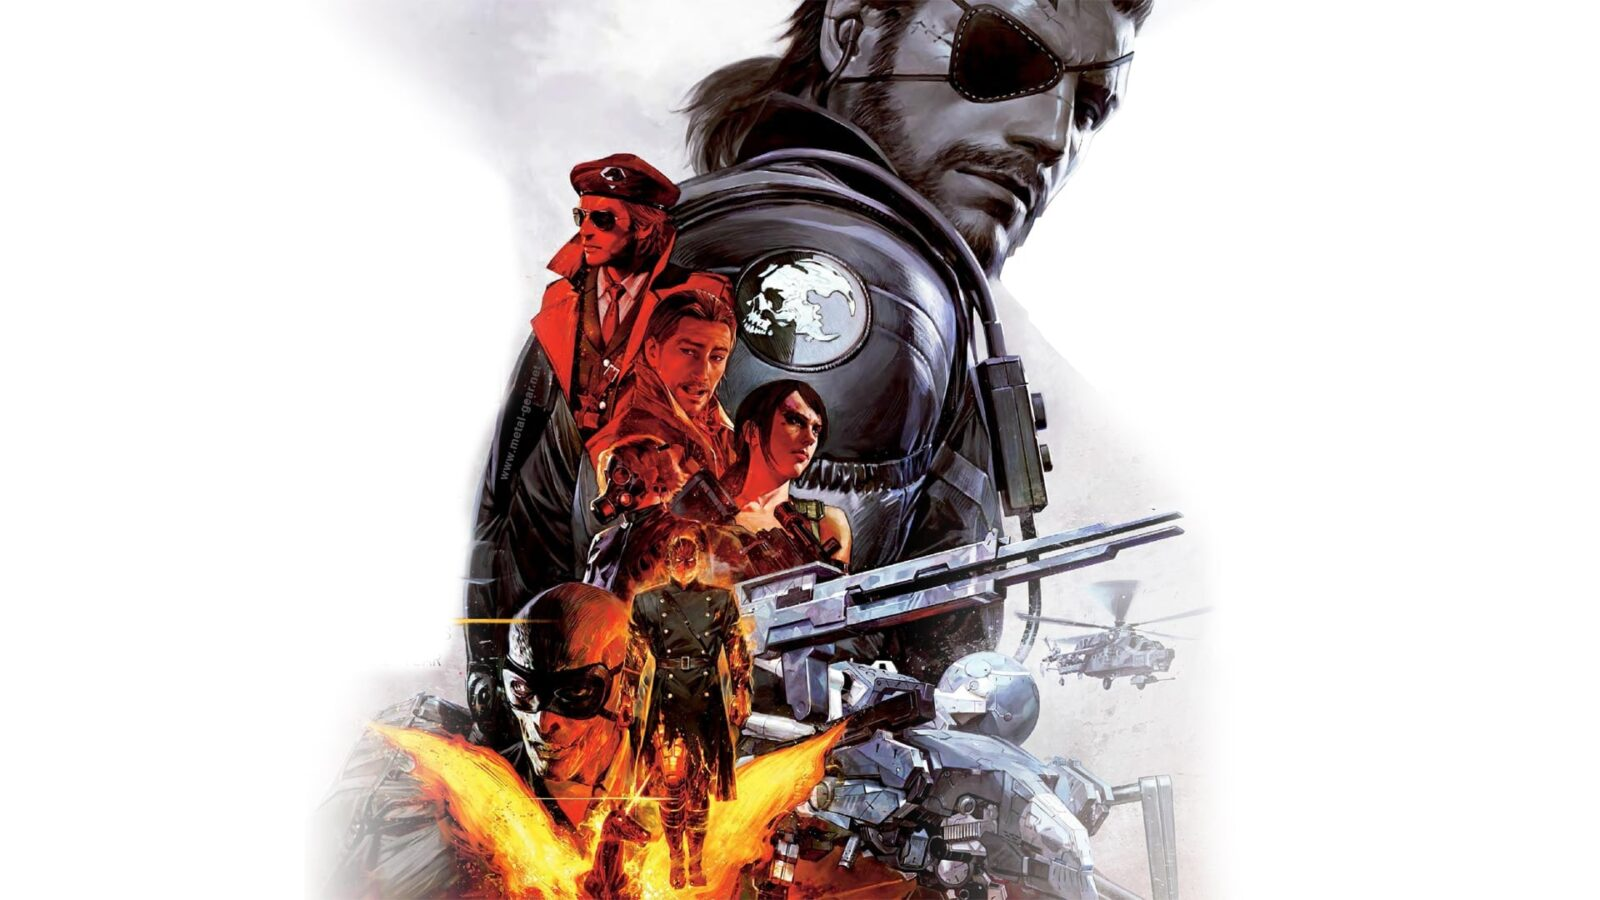 Metal Gear Solid 5 The Phantom Pain HD wallpapers